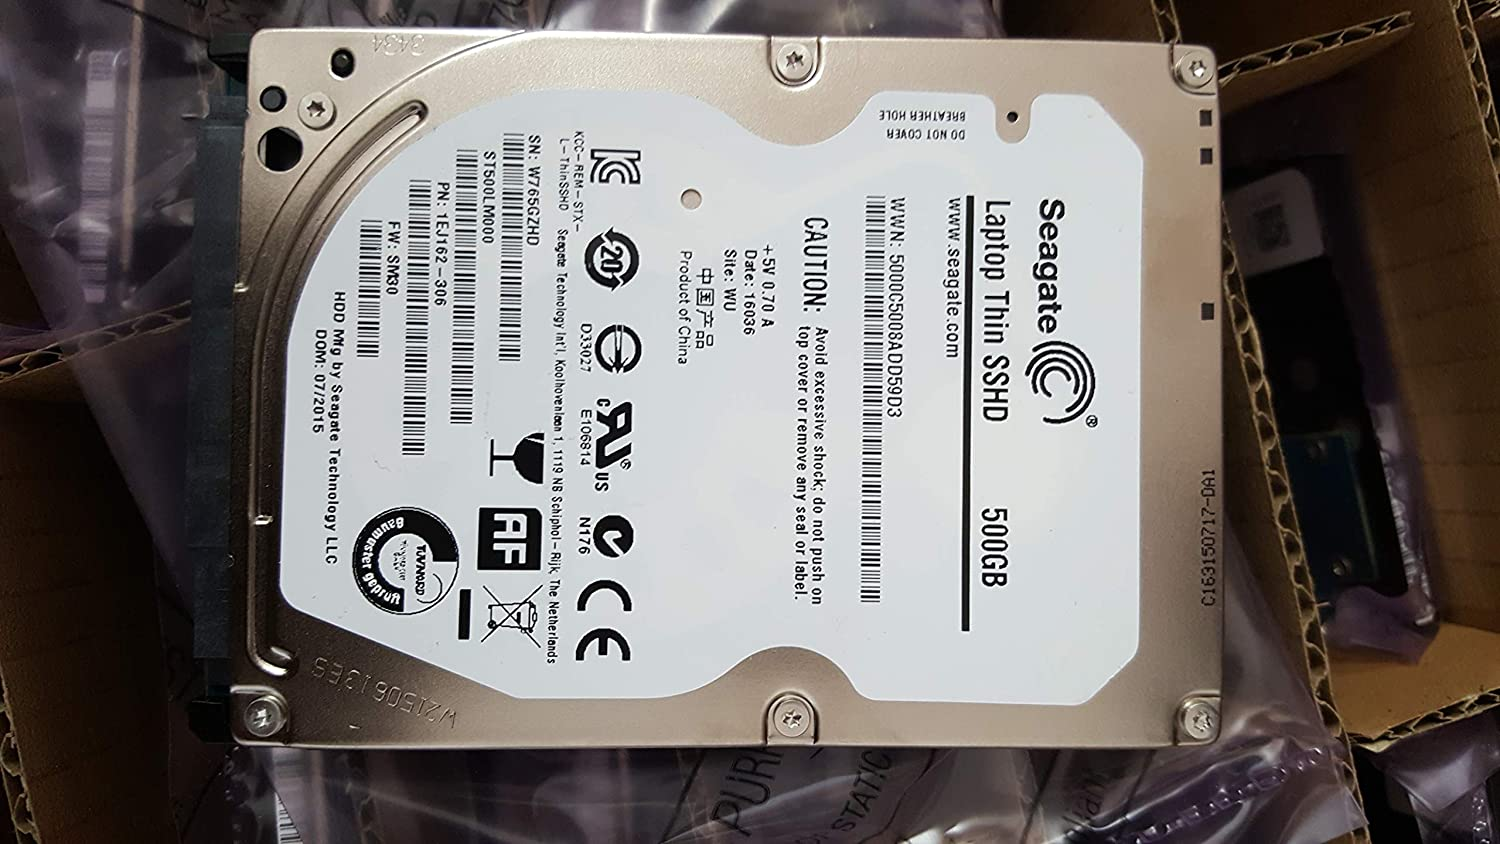 Seagate 500GB Solid State Hybrid Drive SSHD, 500GB HDD and 8GB SSD ...